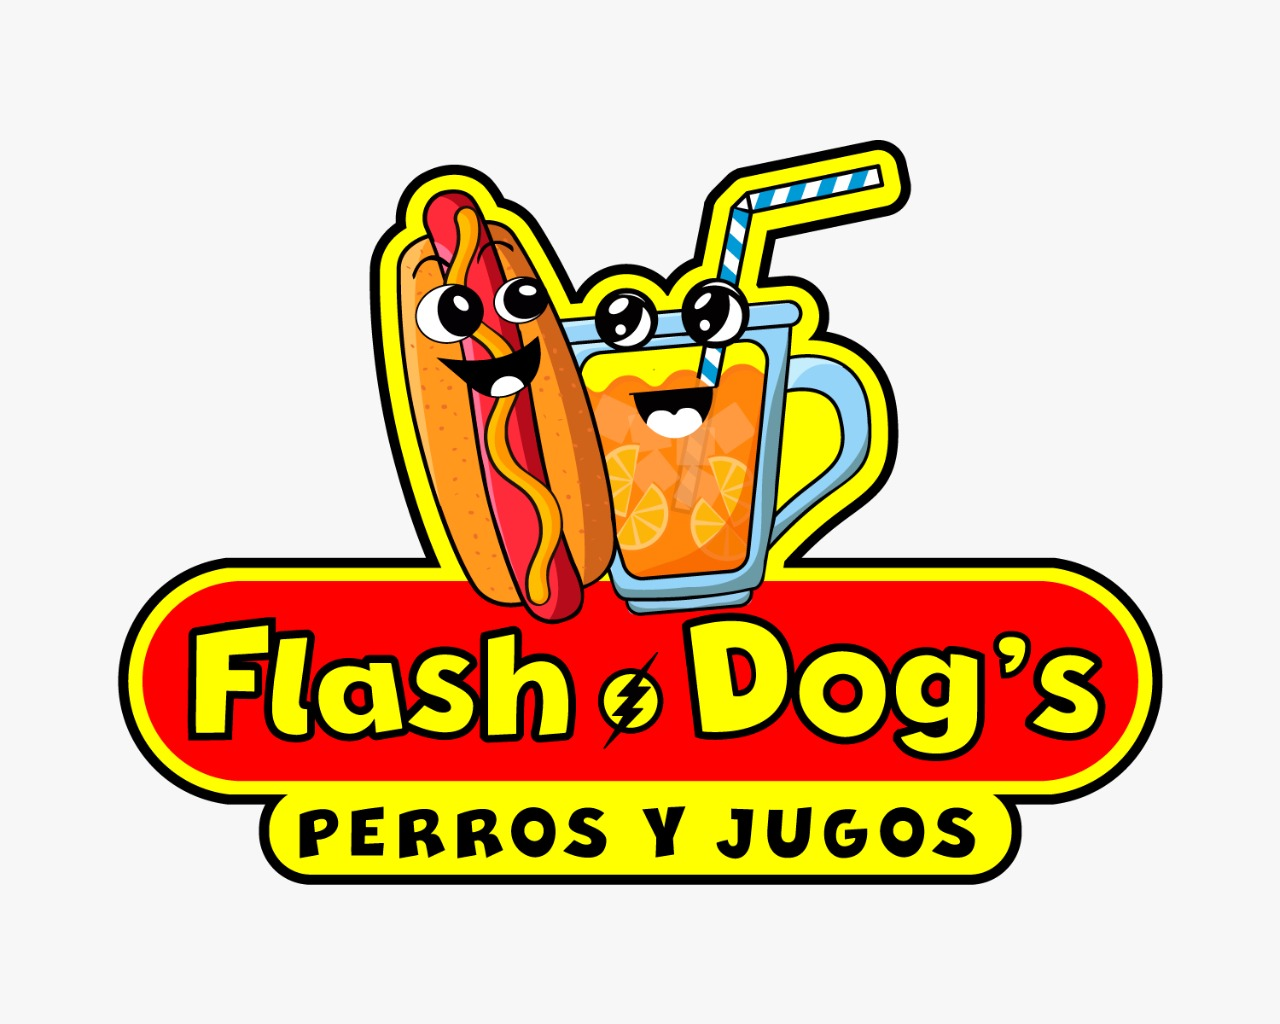 Flash Dogs